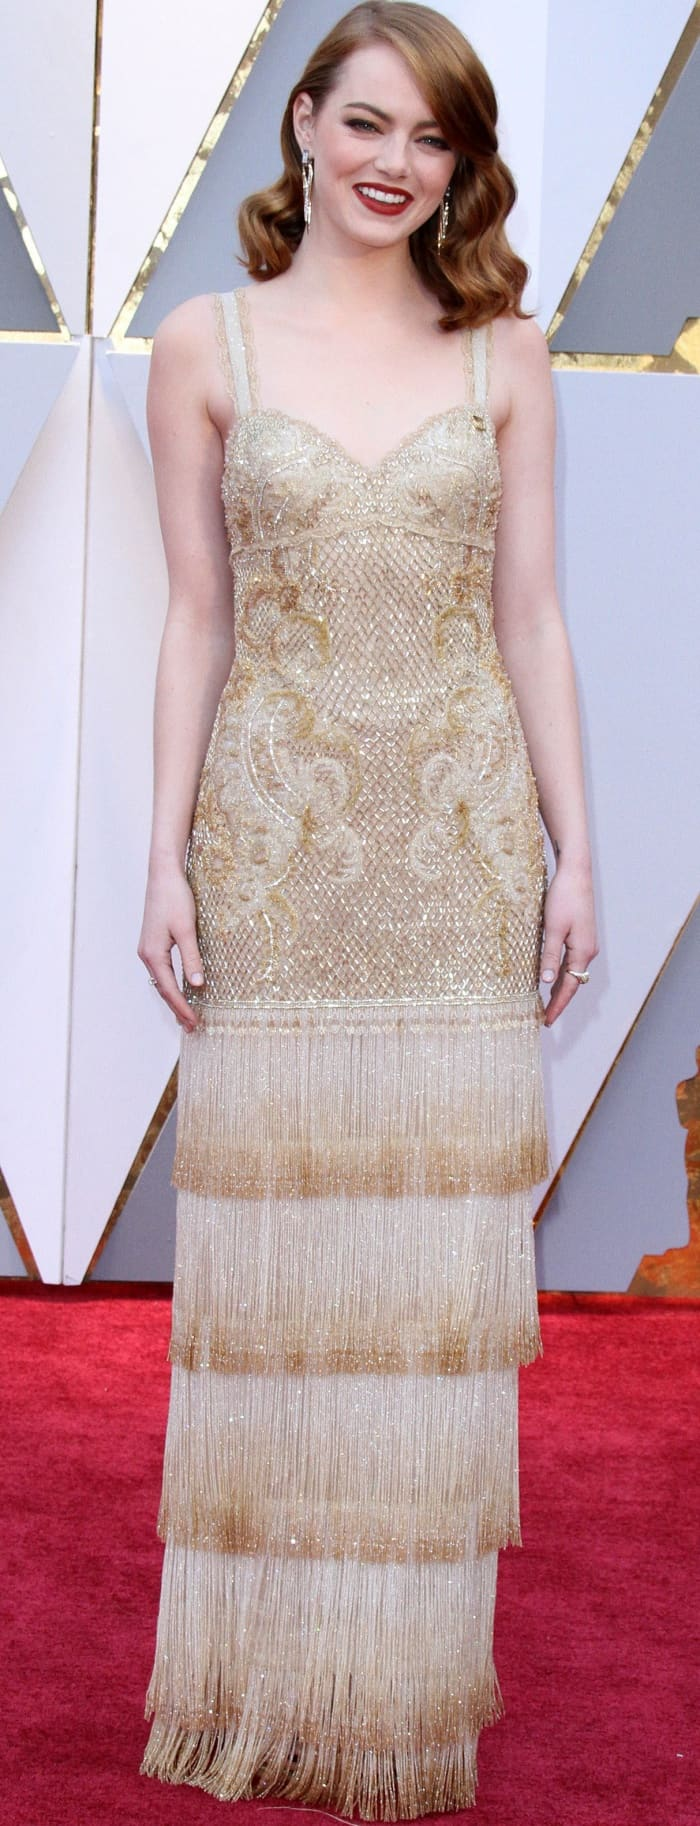 Emma Stone wearing a gold embellished gown from Givenchy at the 2017 Oscars